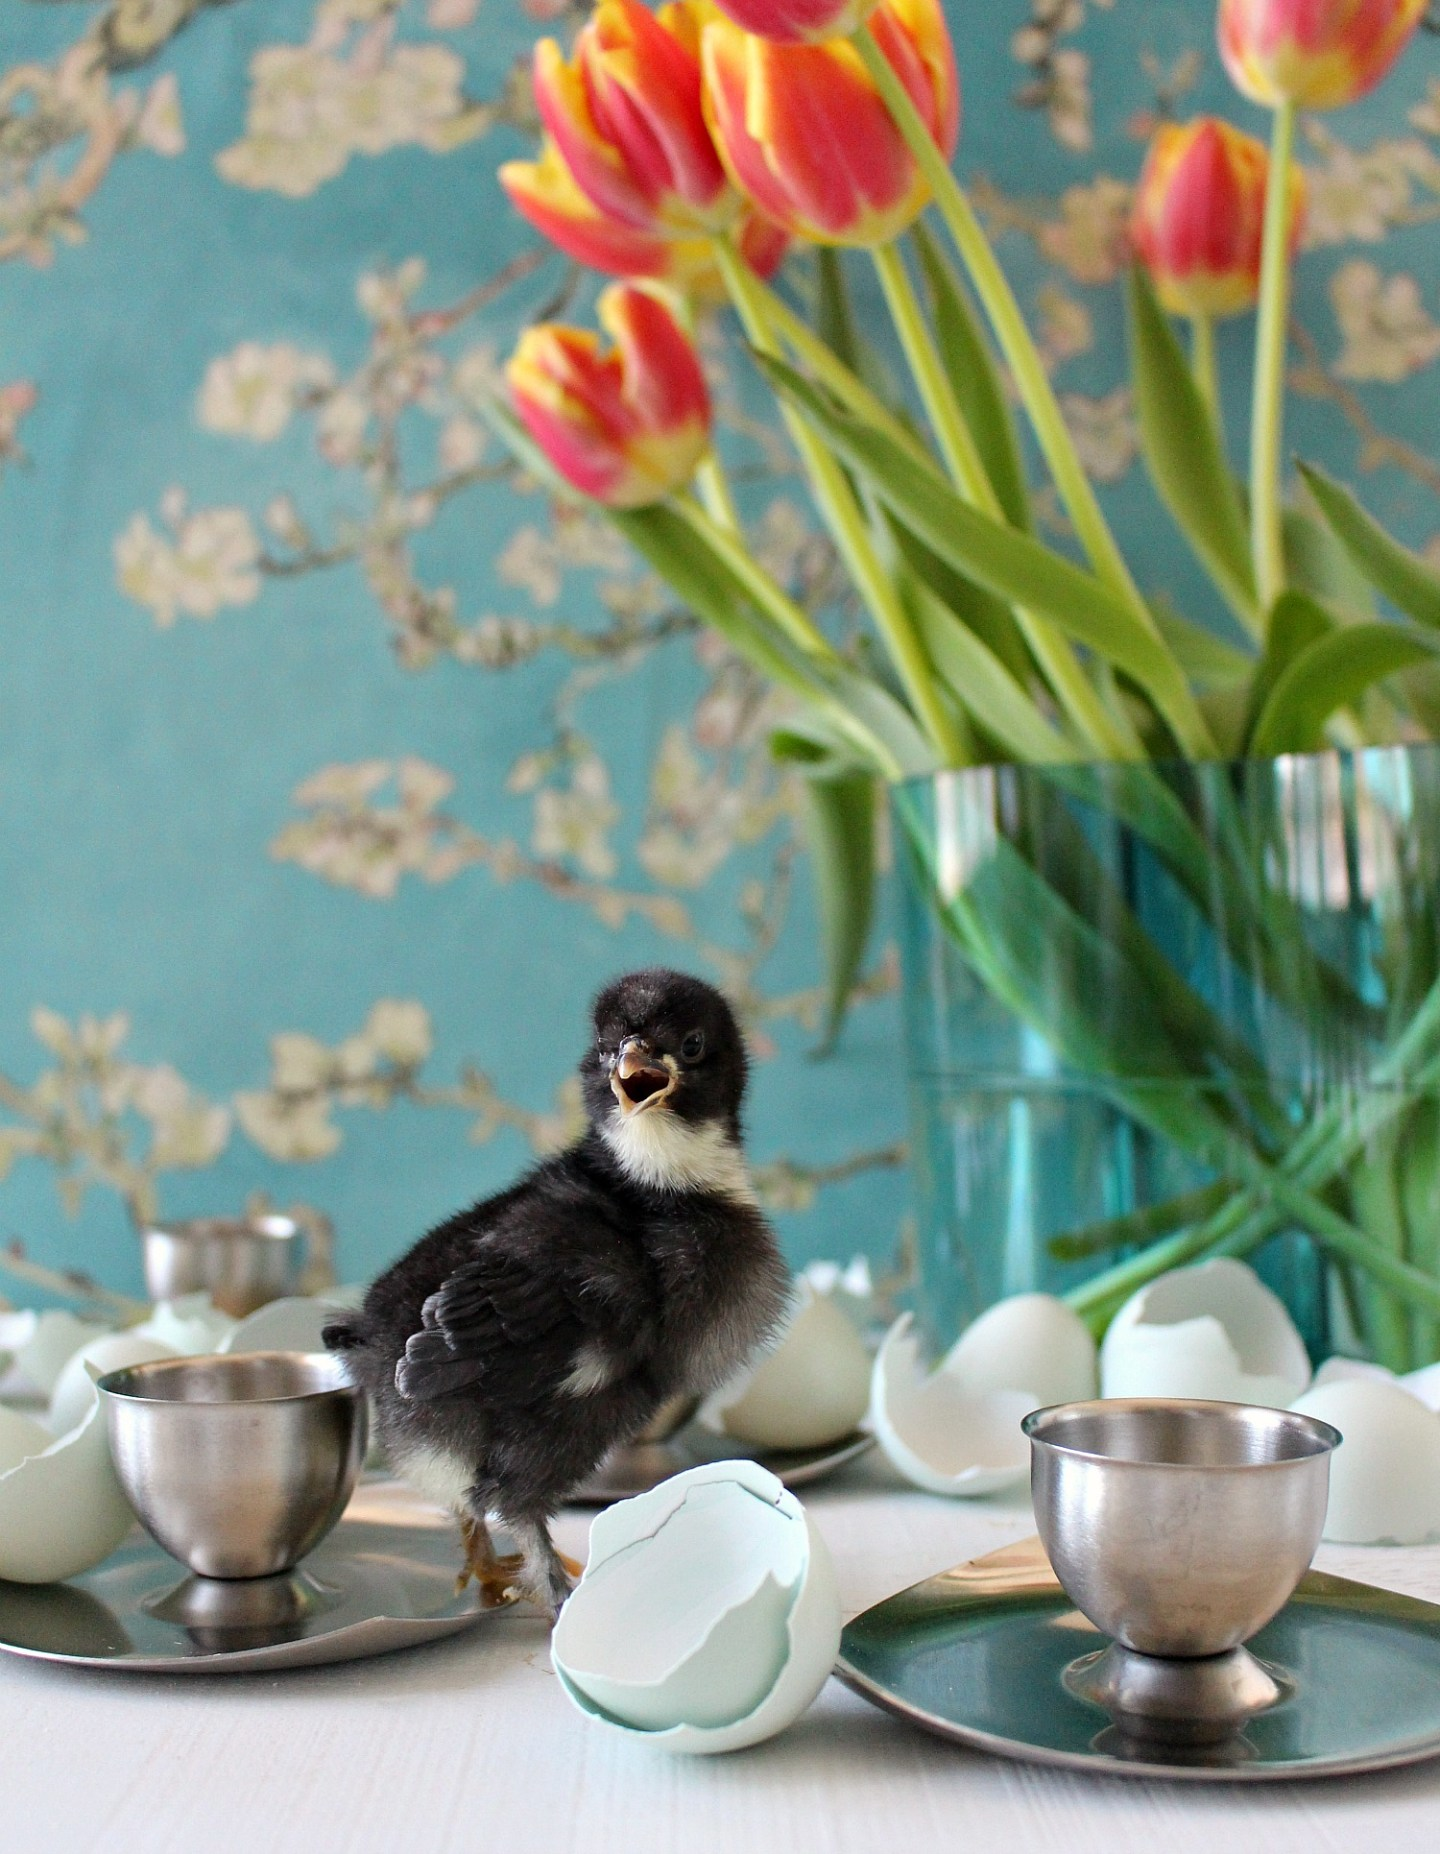 Spring Baby Chick Photos